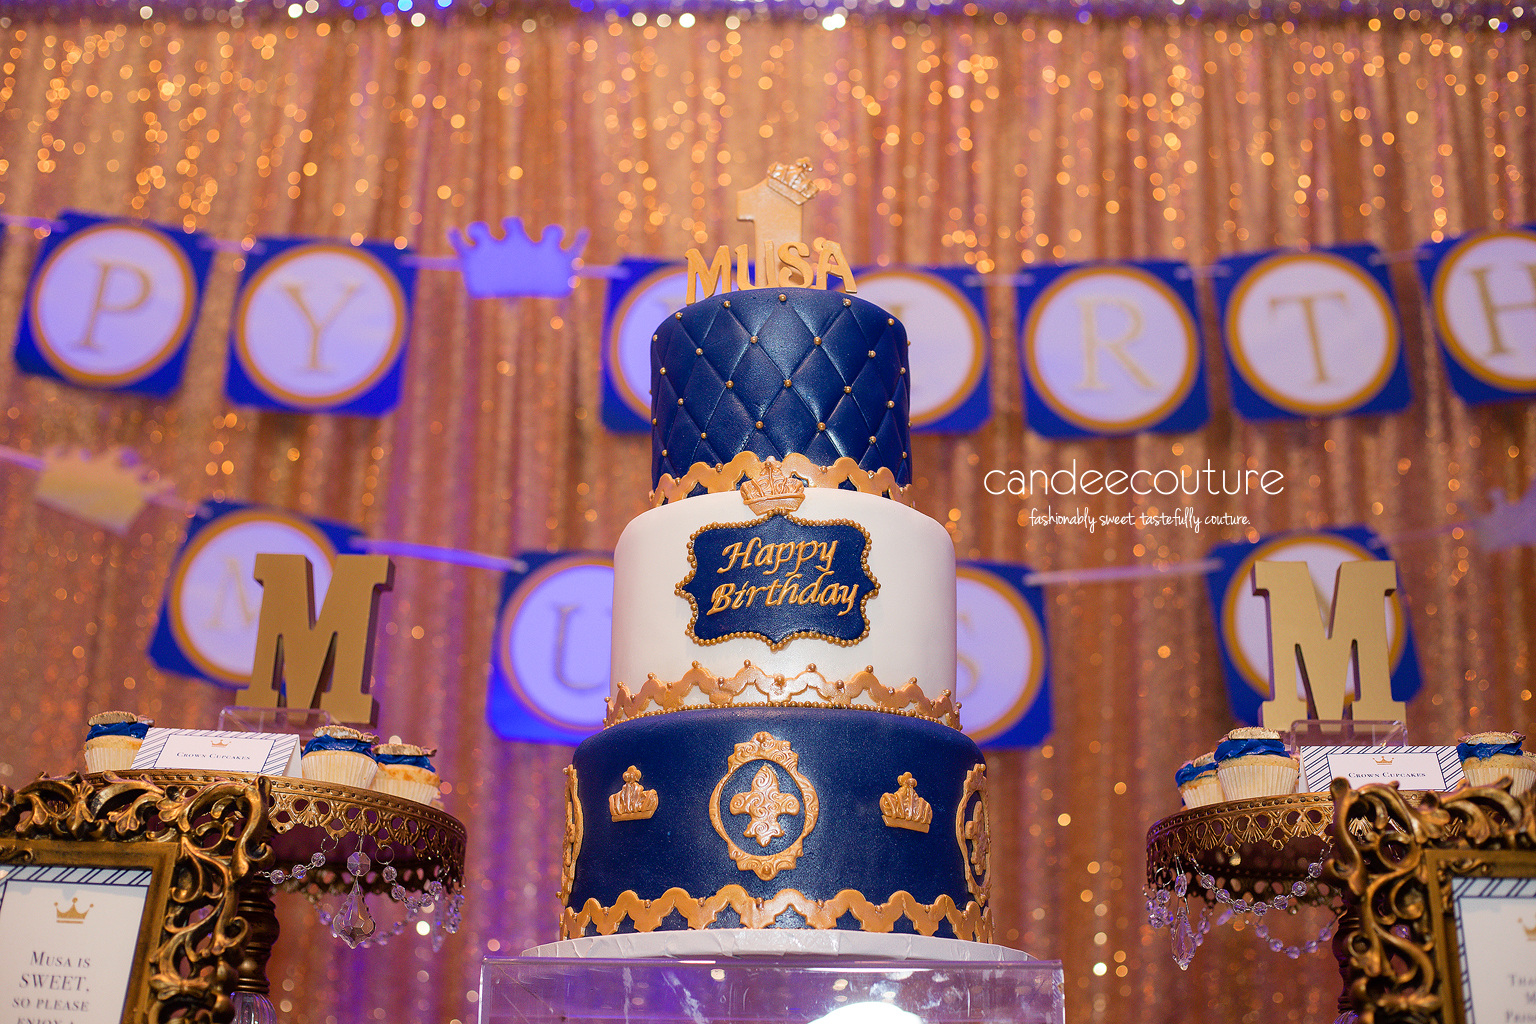 Royal prince theme cake, prince cake, royal prince cake, prince theme sweet table, royal prince theme table, gold backdrop, royal prince cake, royal prince party, birthday, royal prince theme